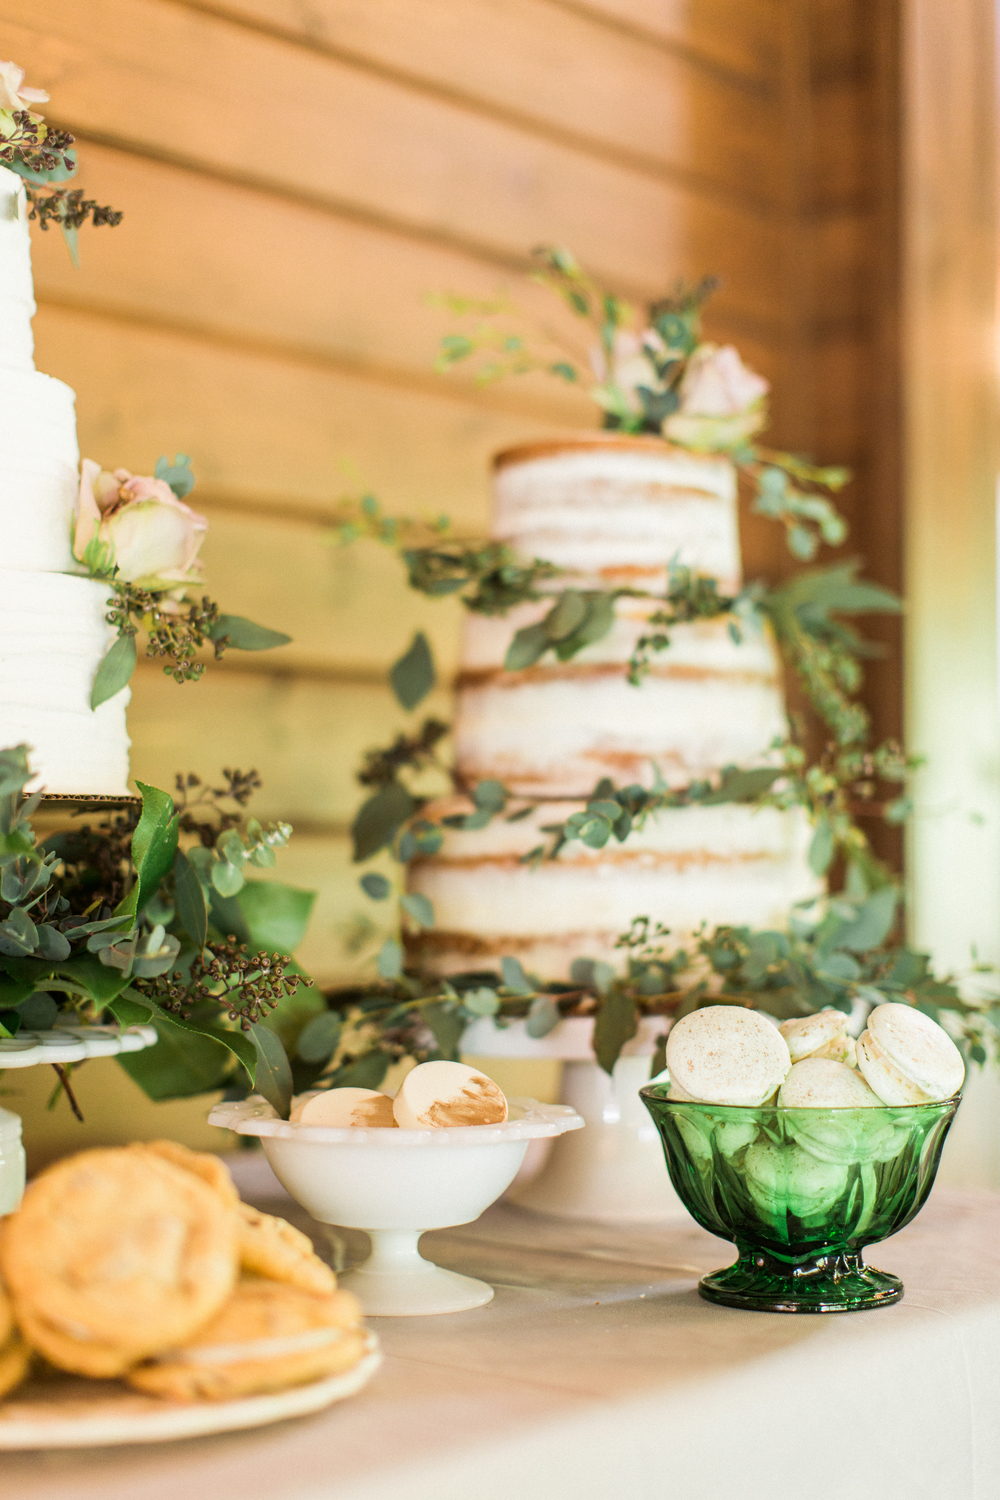 WEDDING DESSERTS — Pollen and Pastry